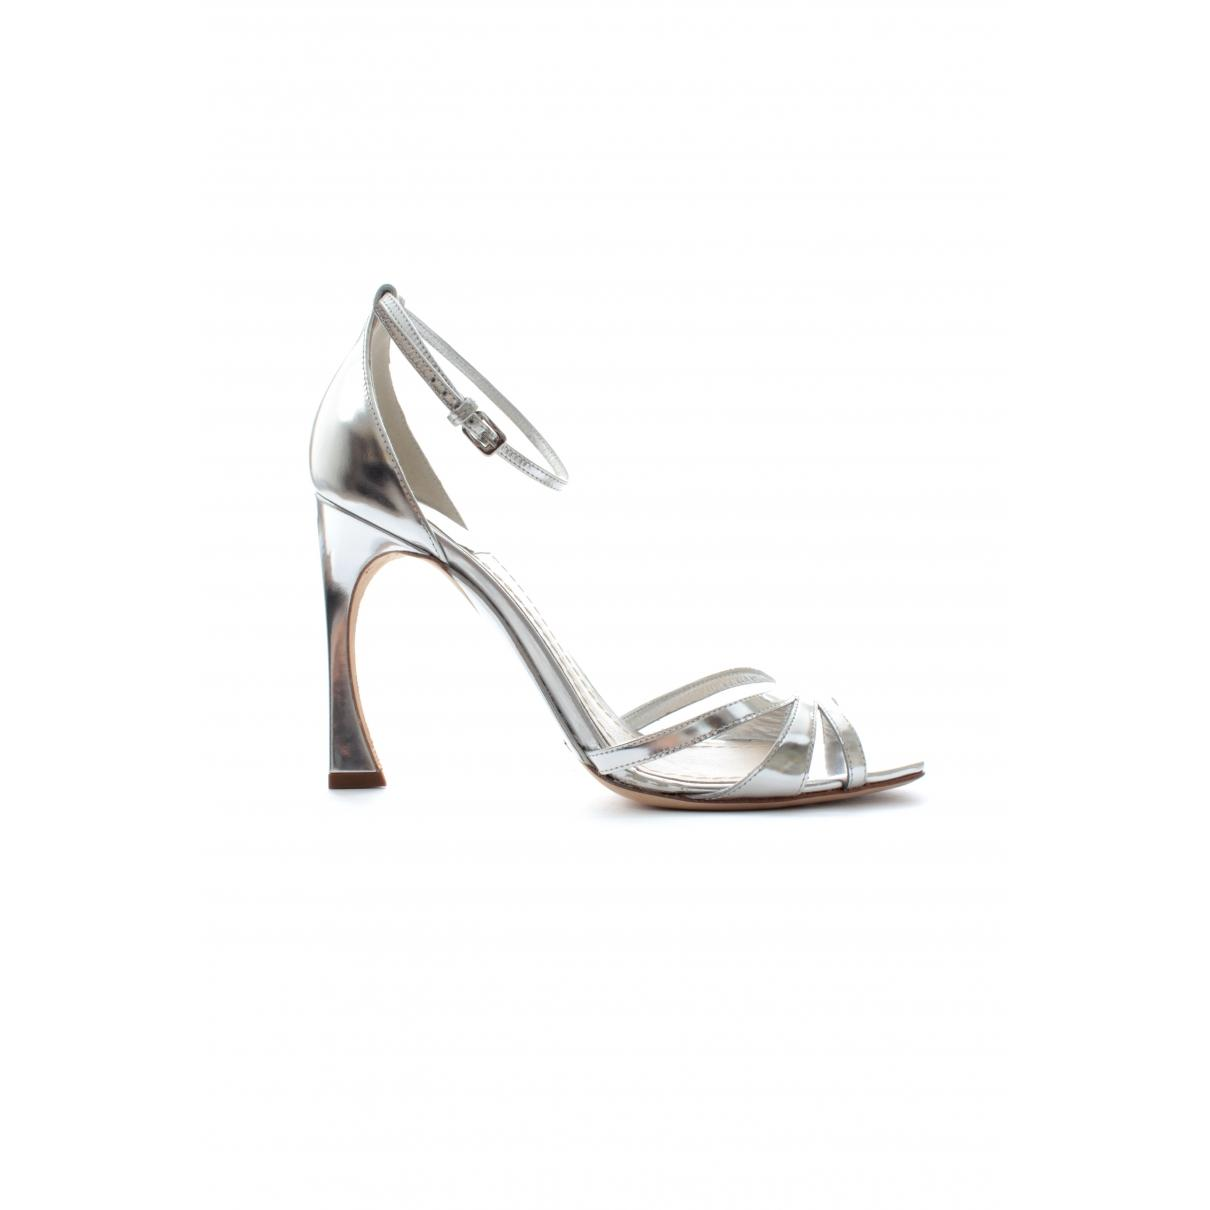 Dior Pre Owned Leather Heels In Metallic